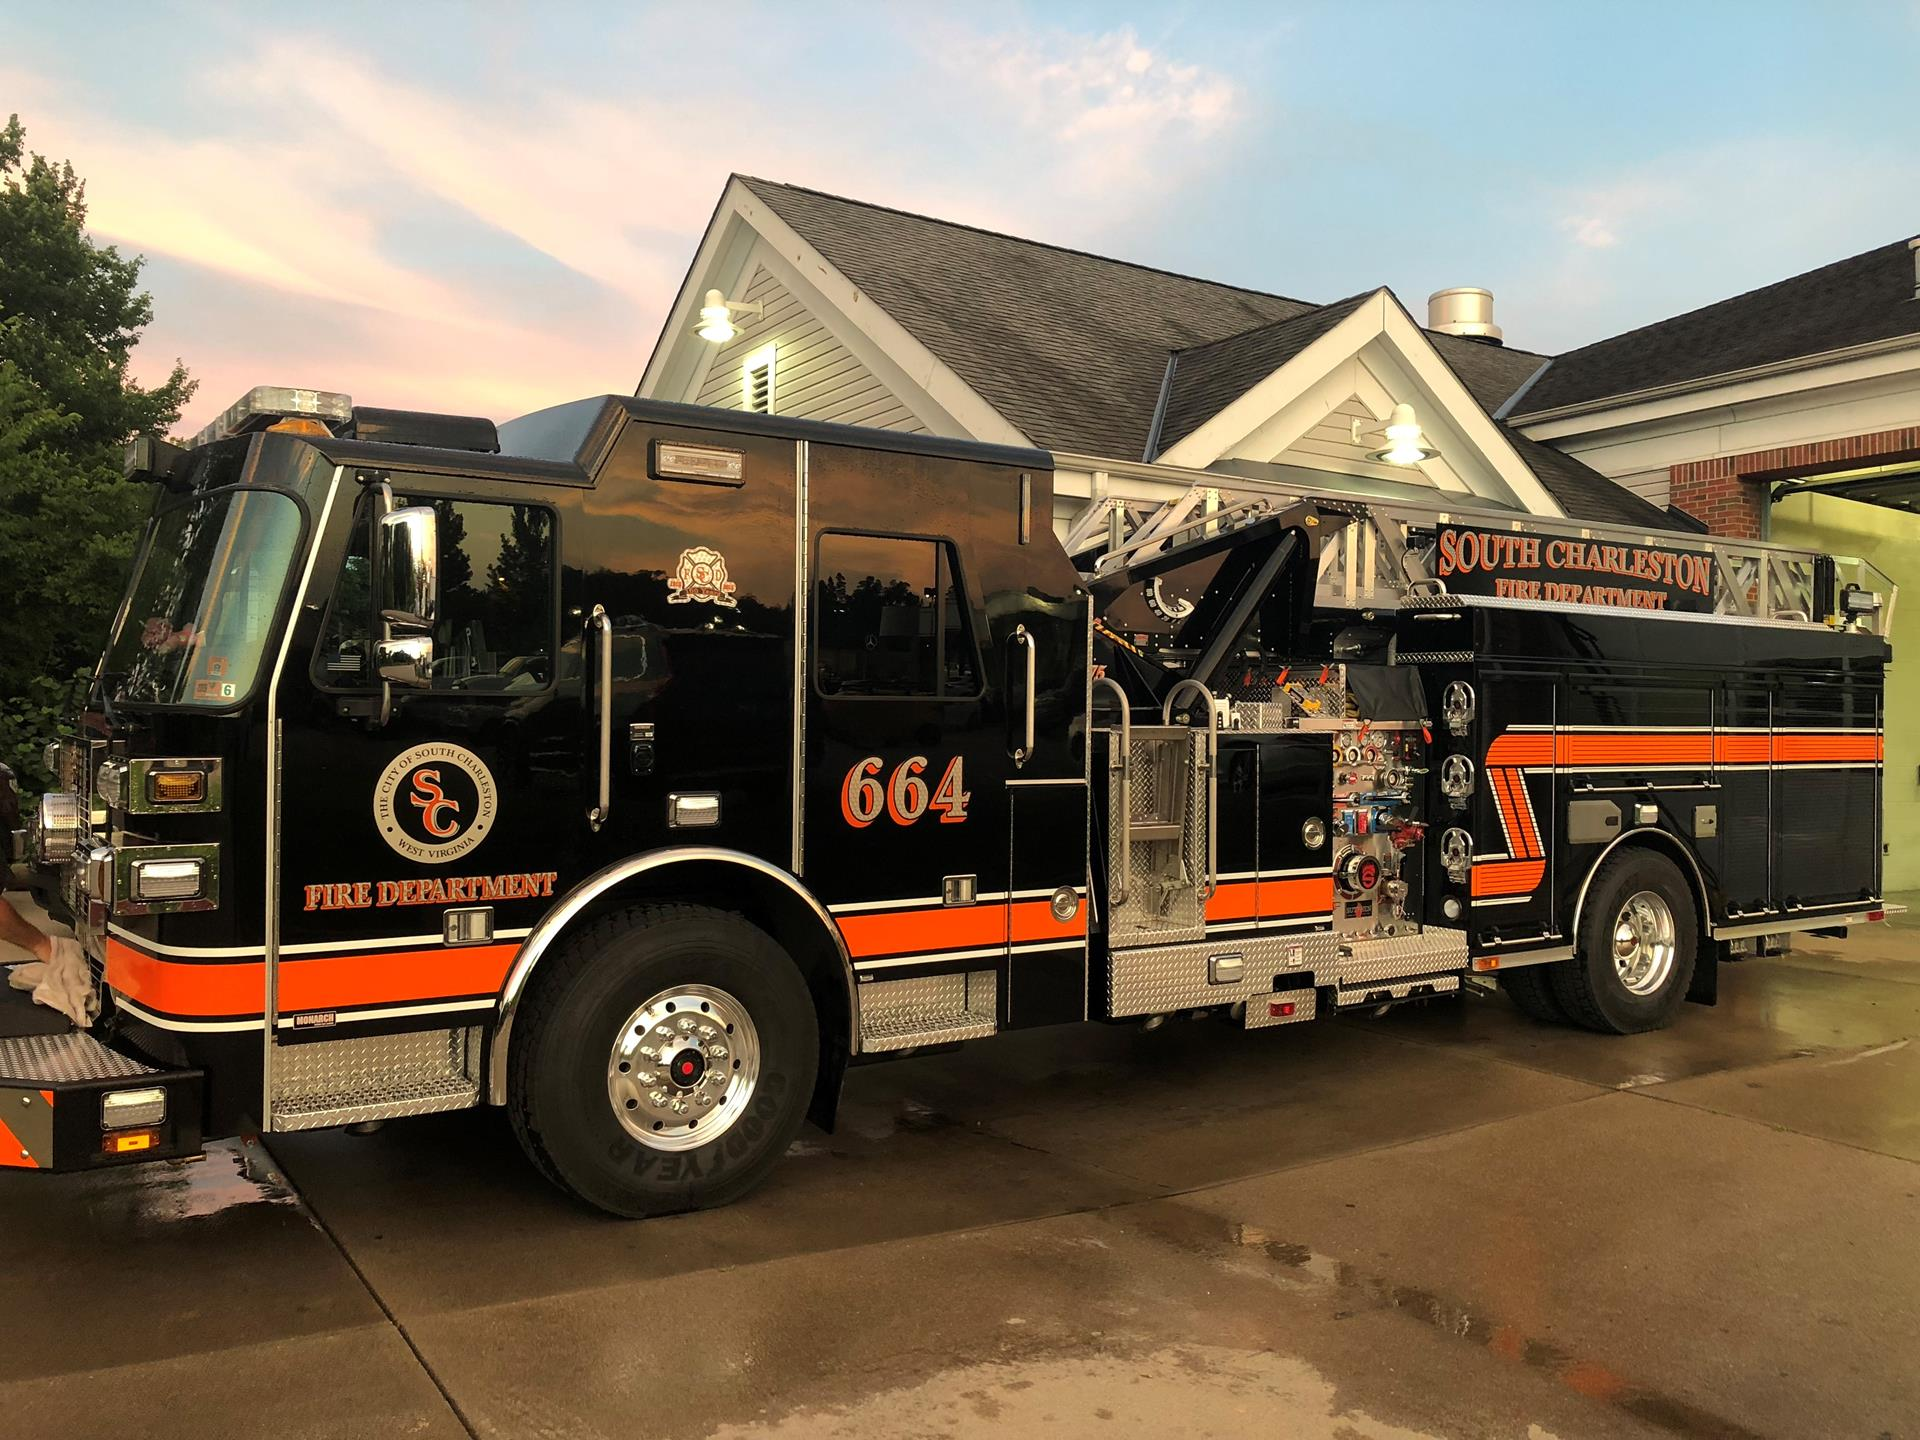 South Charleston Fire Department, WV